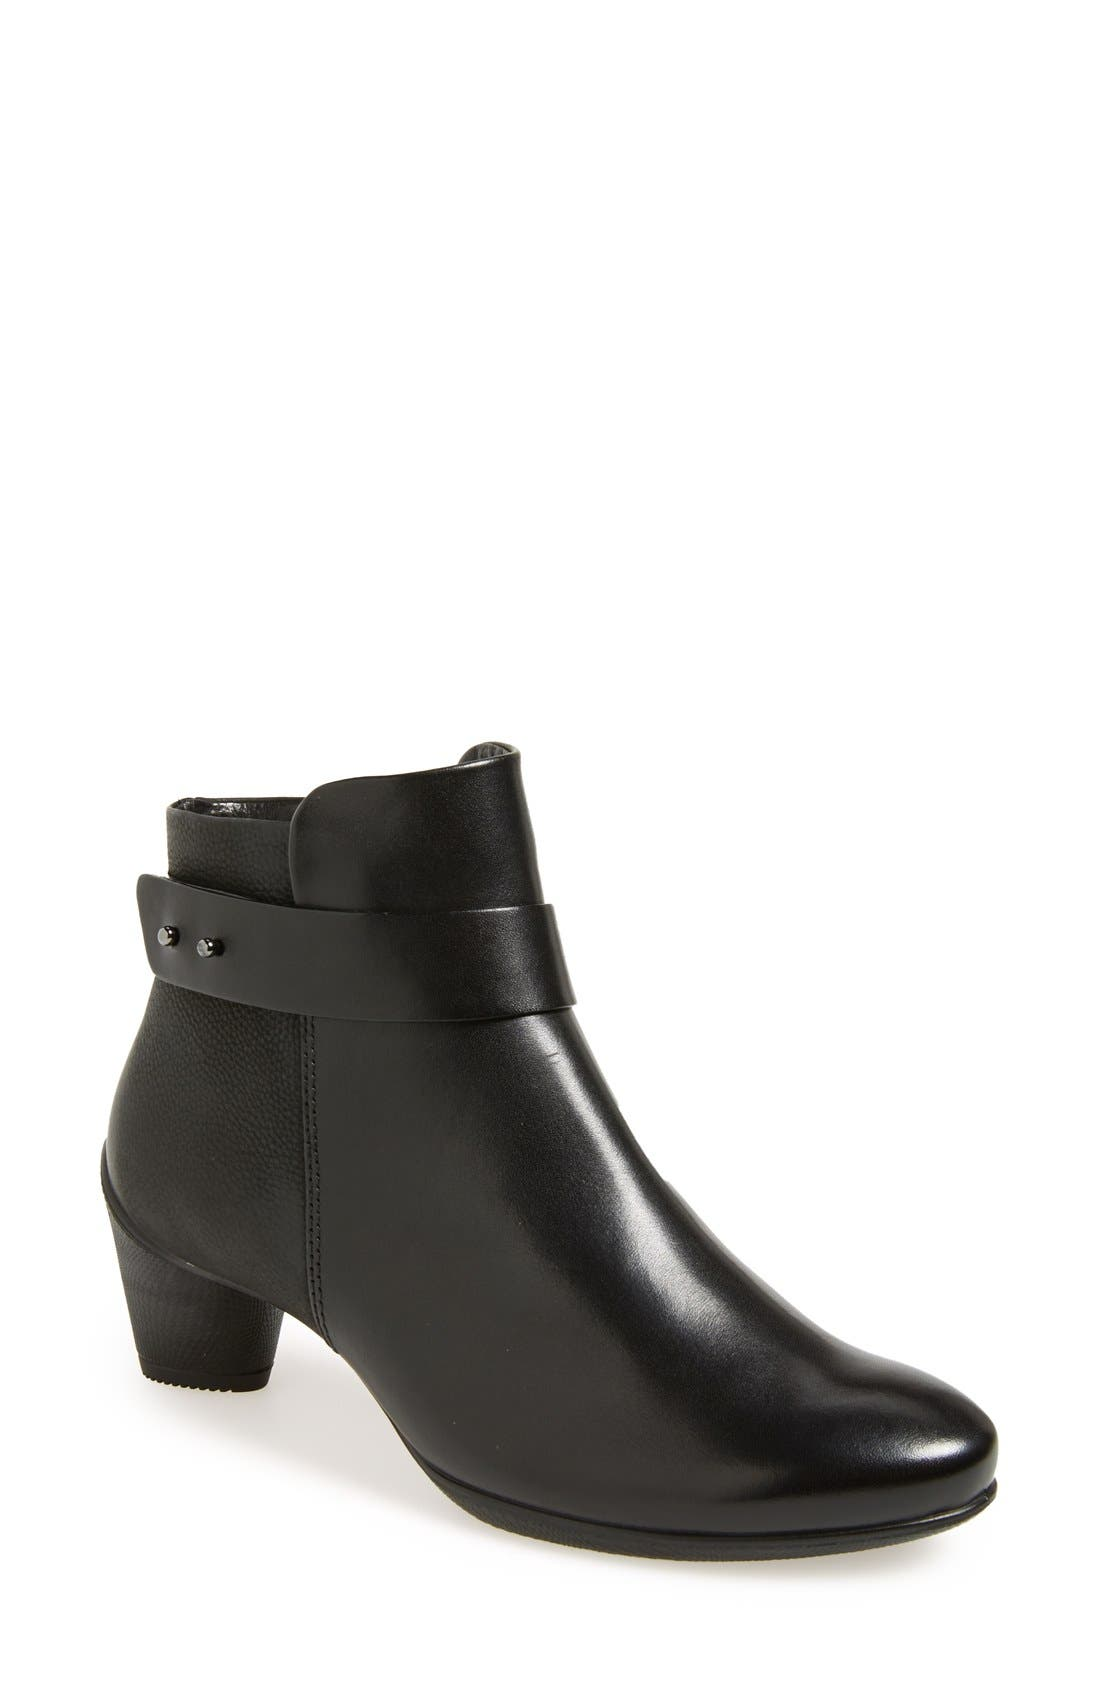 ECCO 'Sculptured 45' Ankle Boot